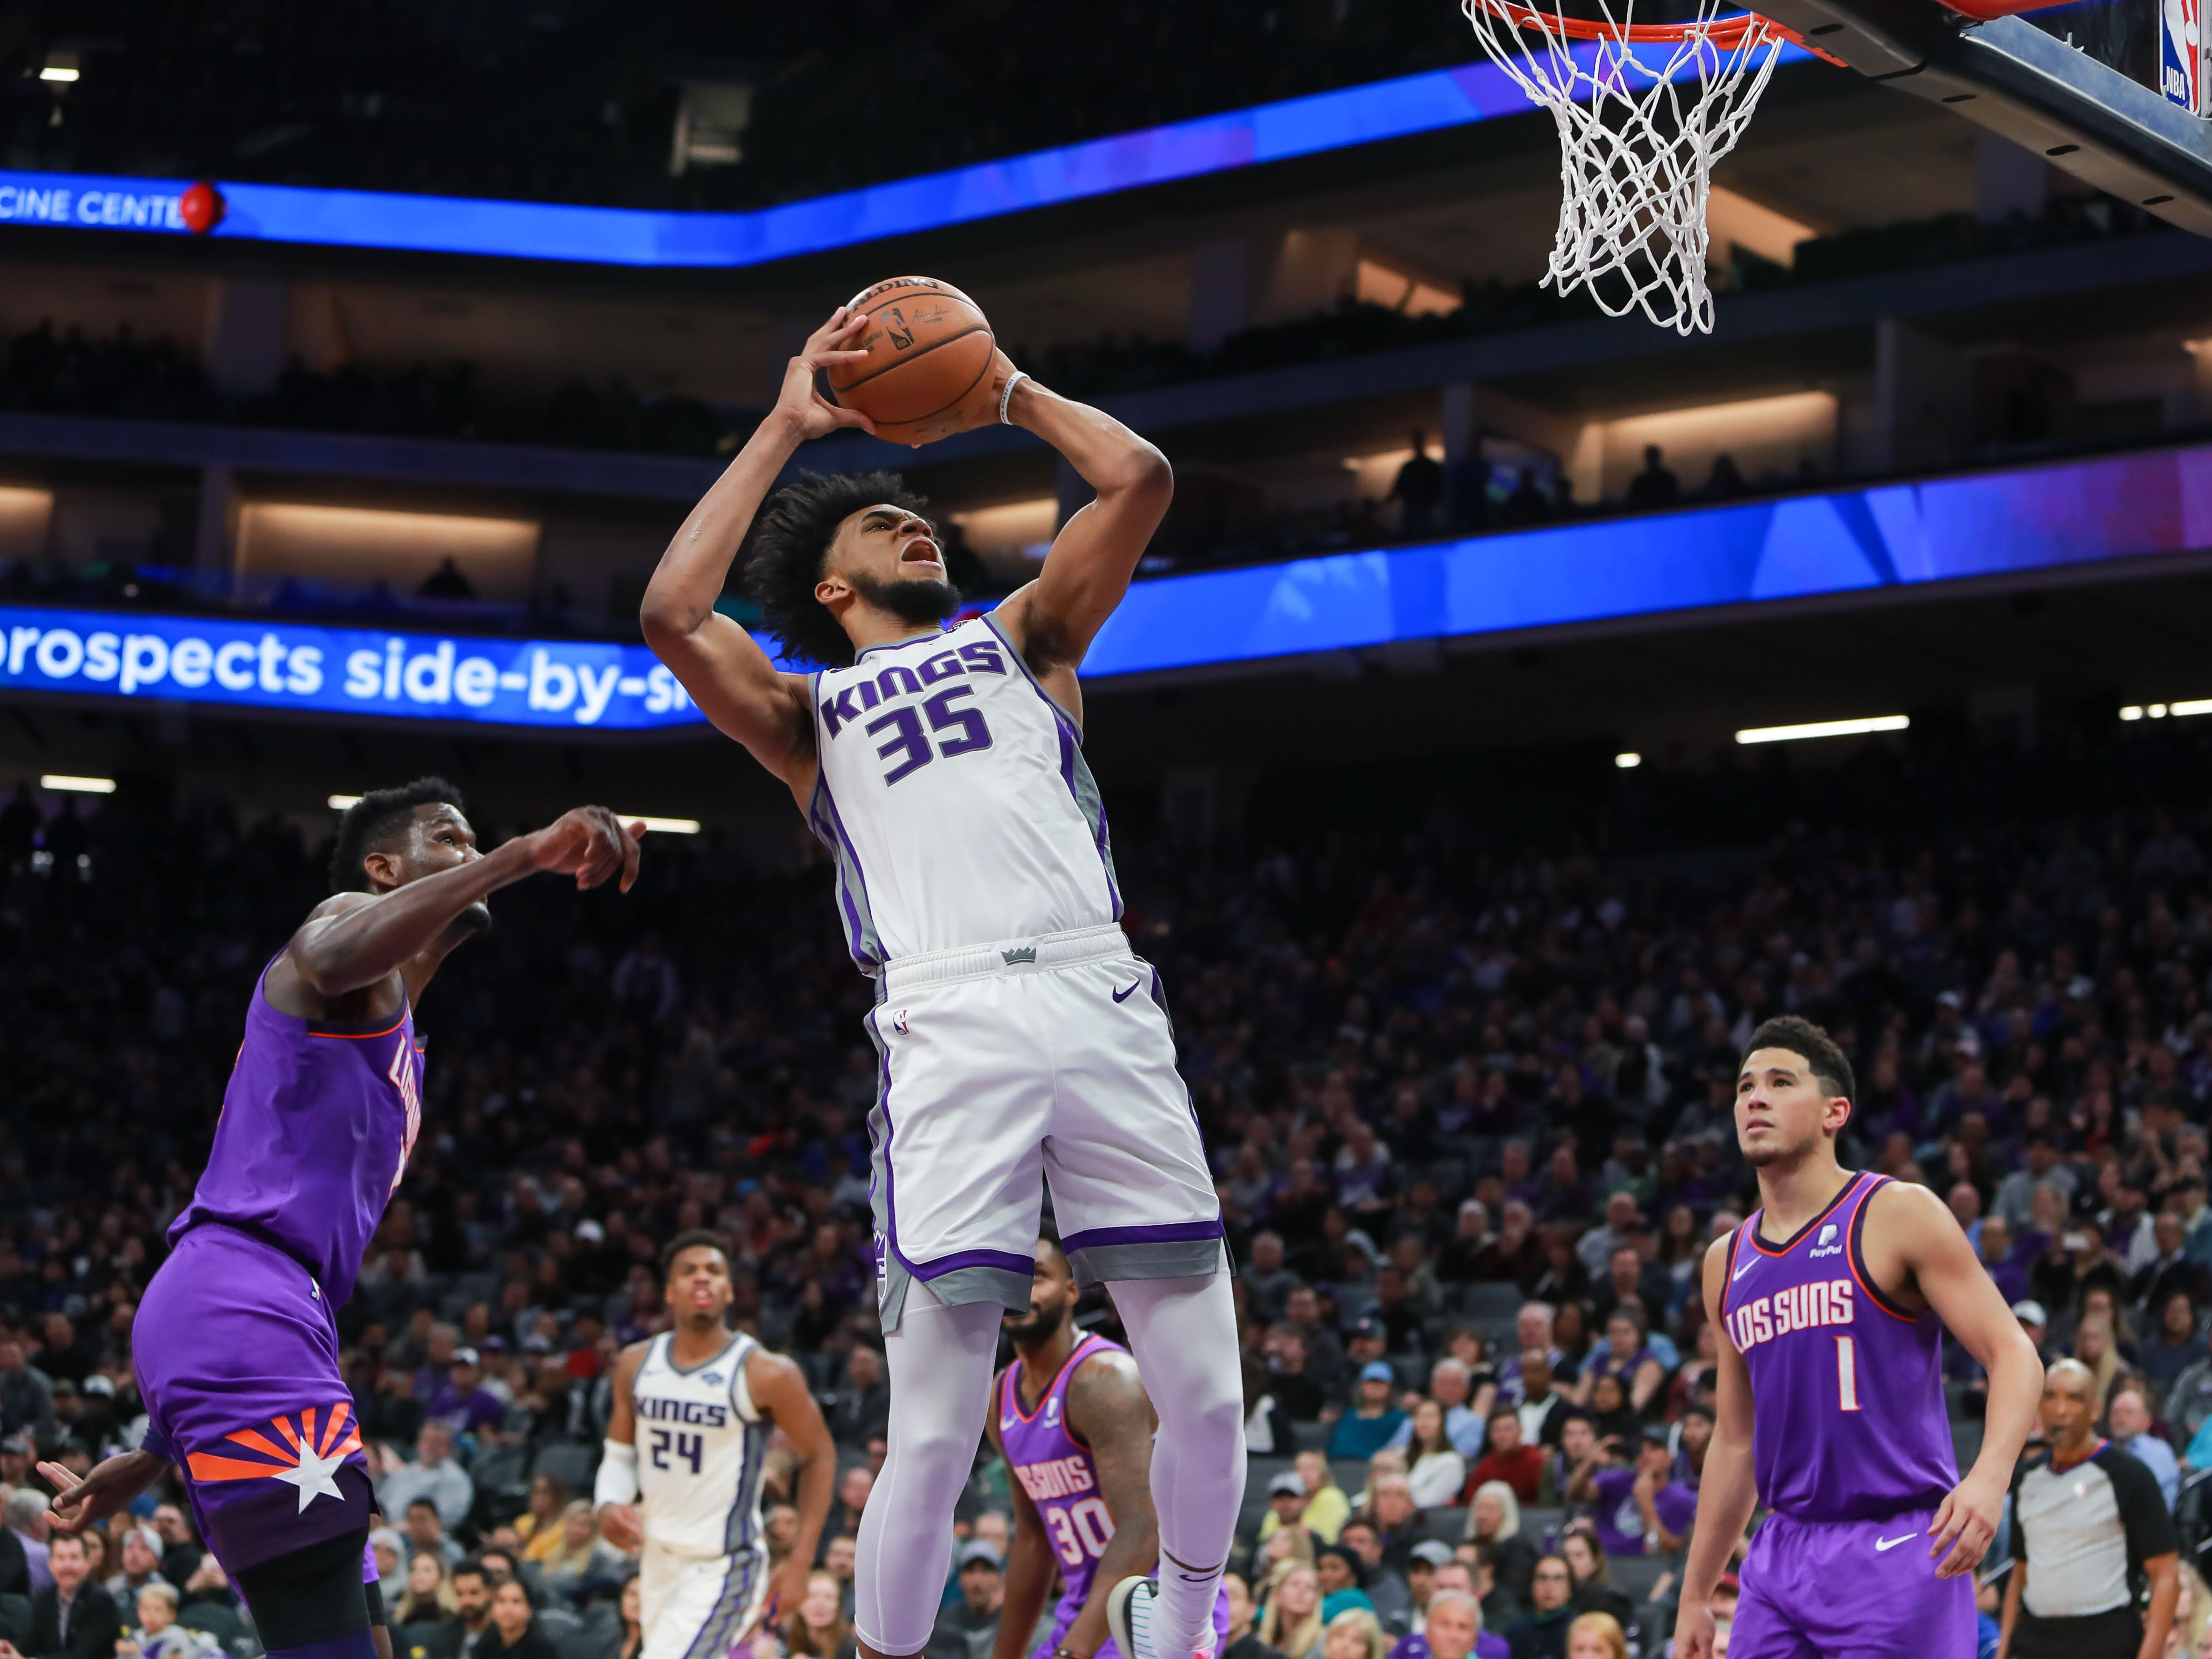 Mar 23, 2019; Sacramento, CA, USA; Sacramento Kings forward Marvin Bagley III (35) grabs a rebound against Phoenix Suns center Deandre Ayton (22) during the fourth quarter at Golden 1 Center.